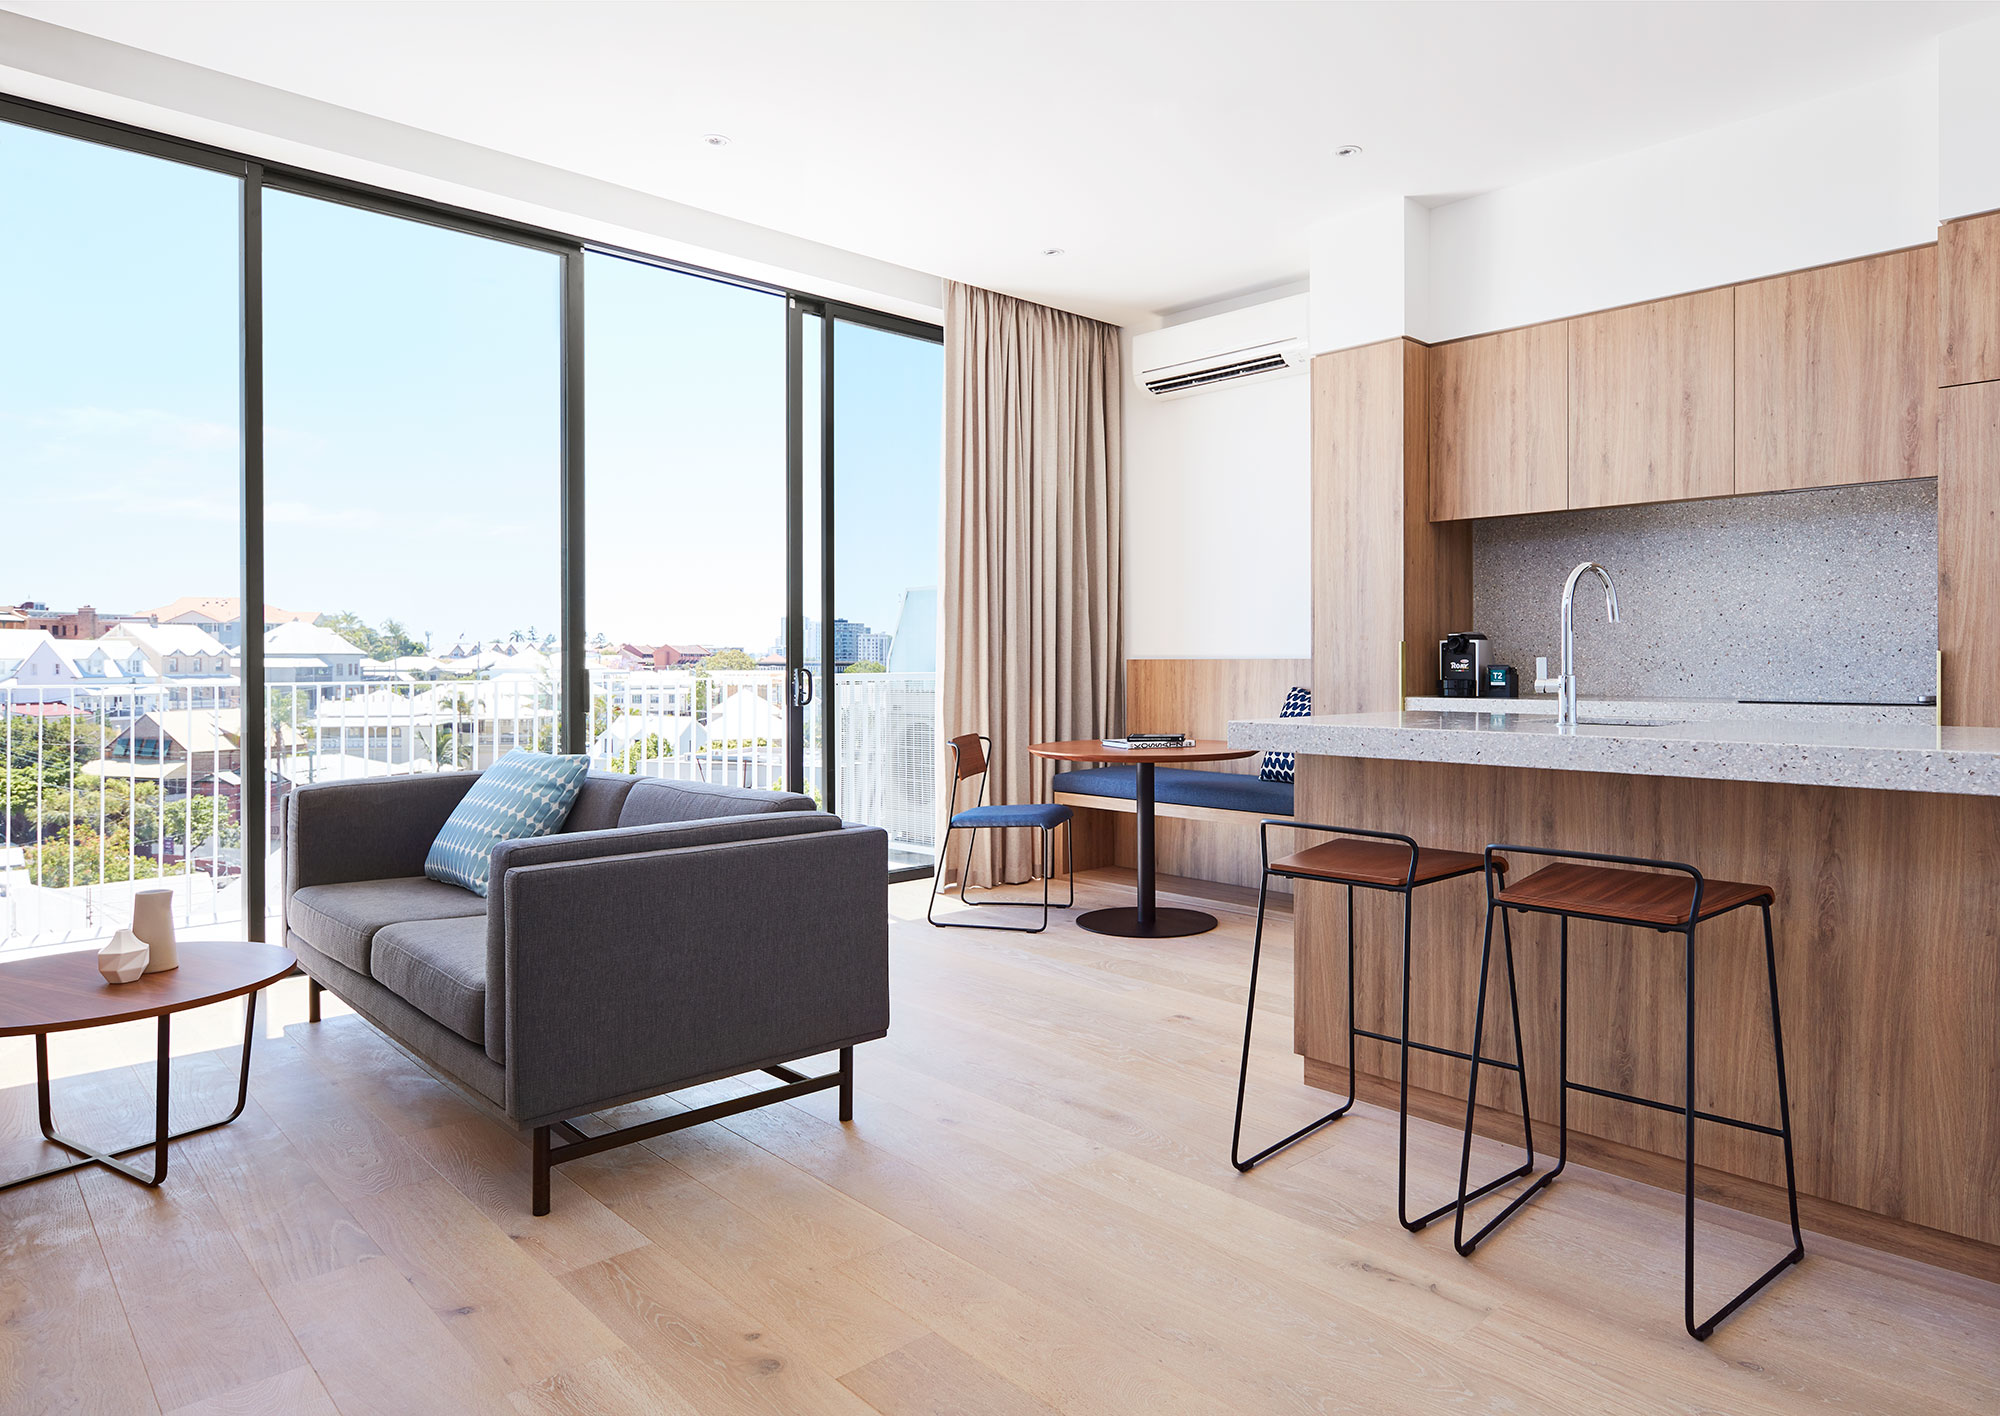 Two bedroom apartment.